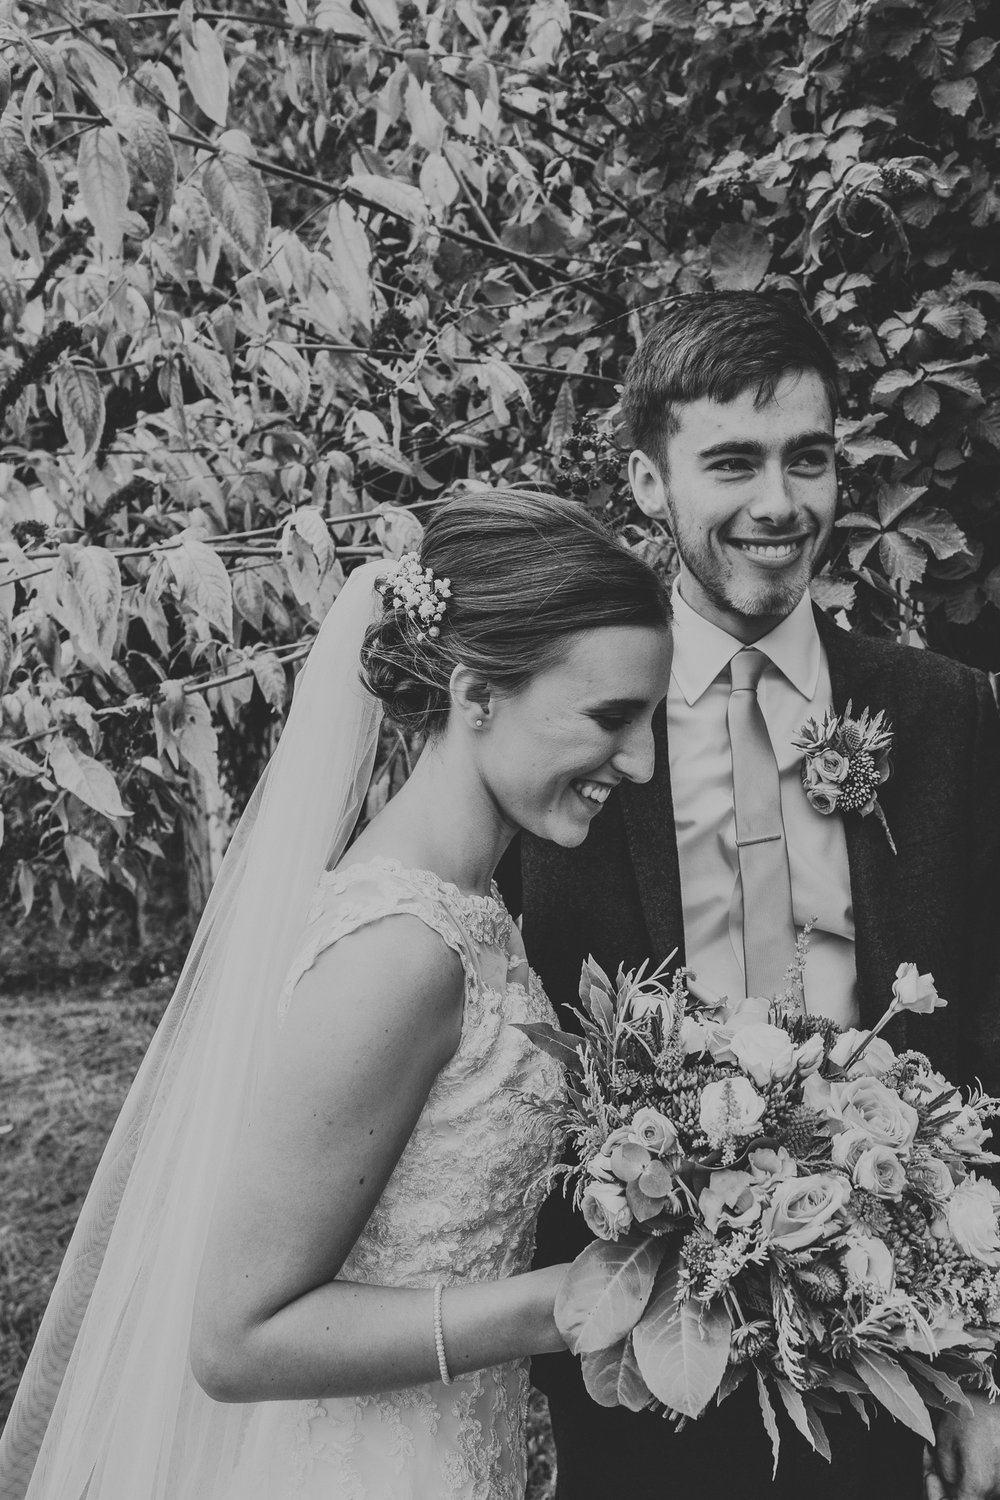 Jess and Ben - Liverpool wedding - black and white bride and groom smiling